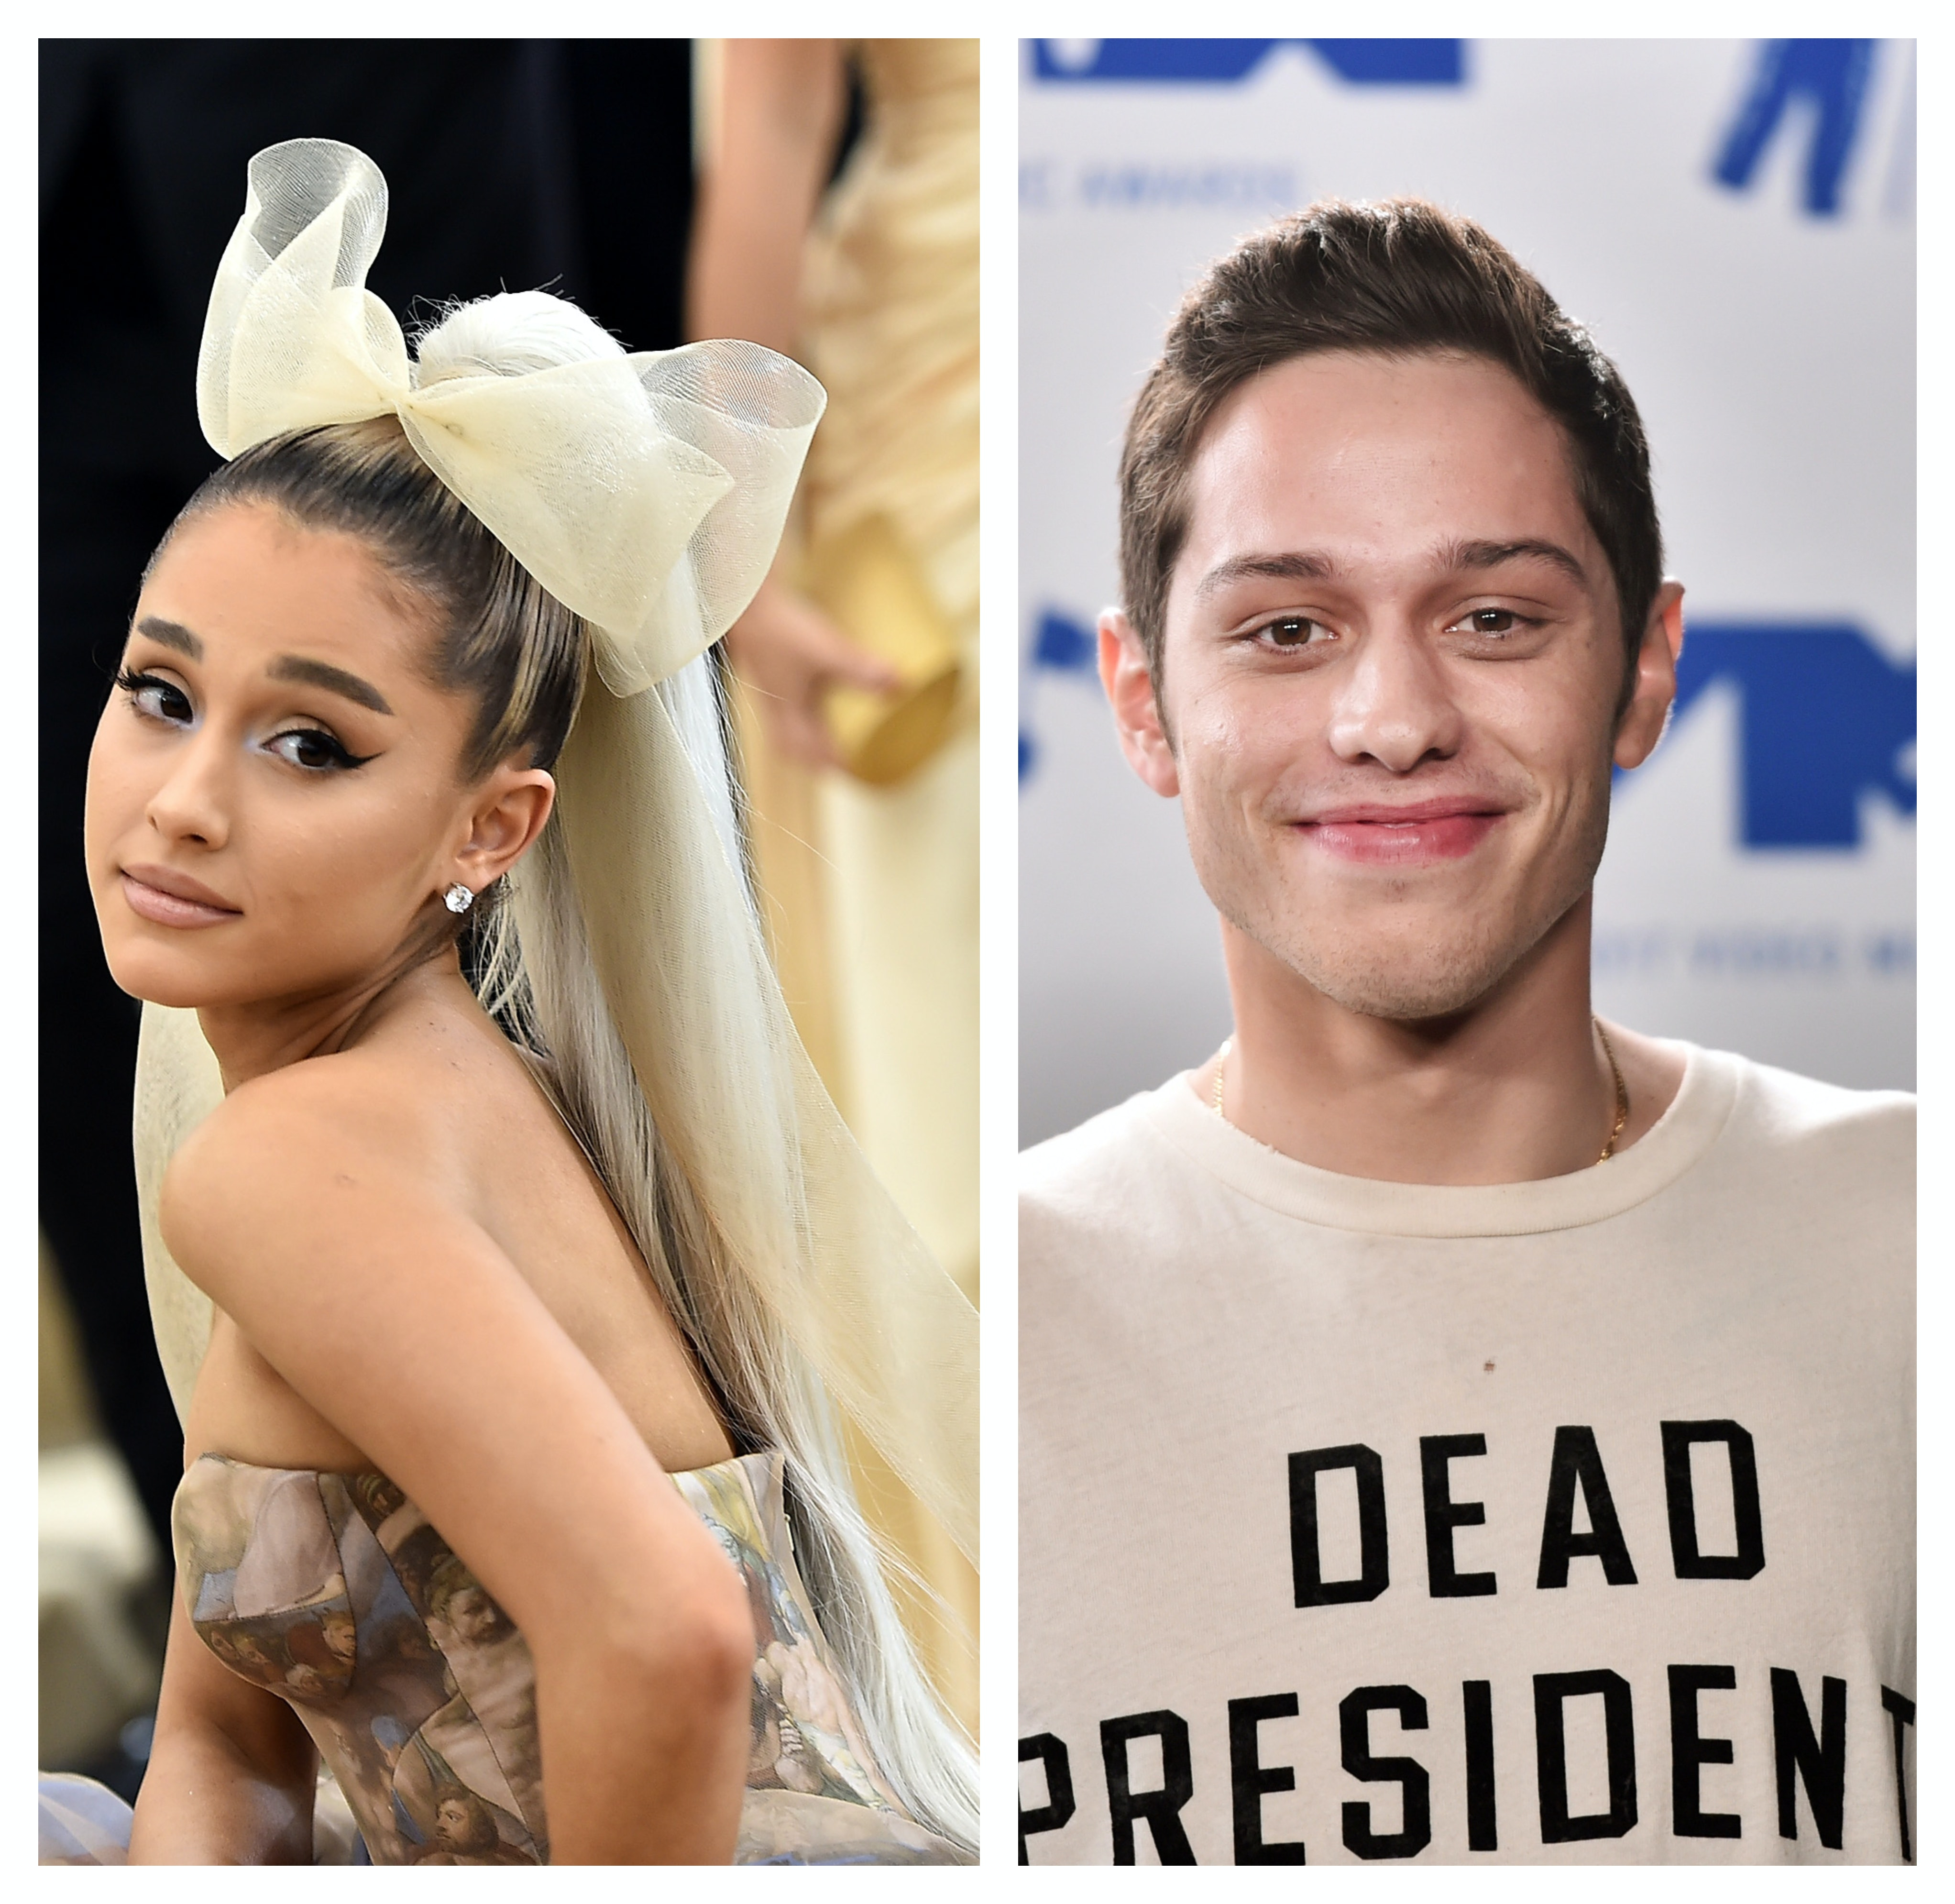 Who is dating ariana grande now hated